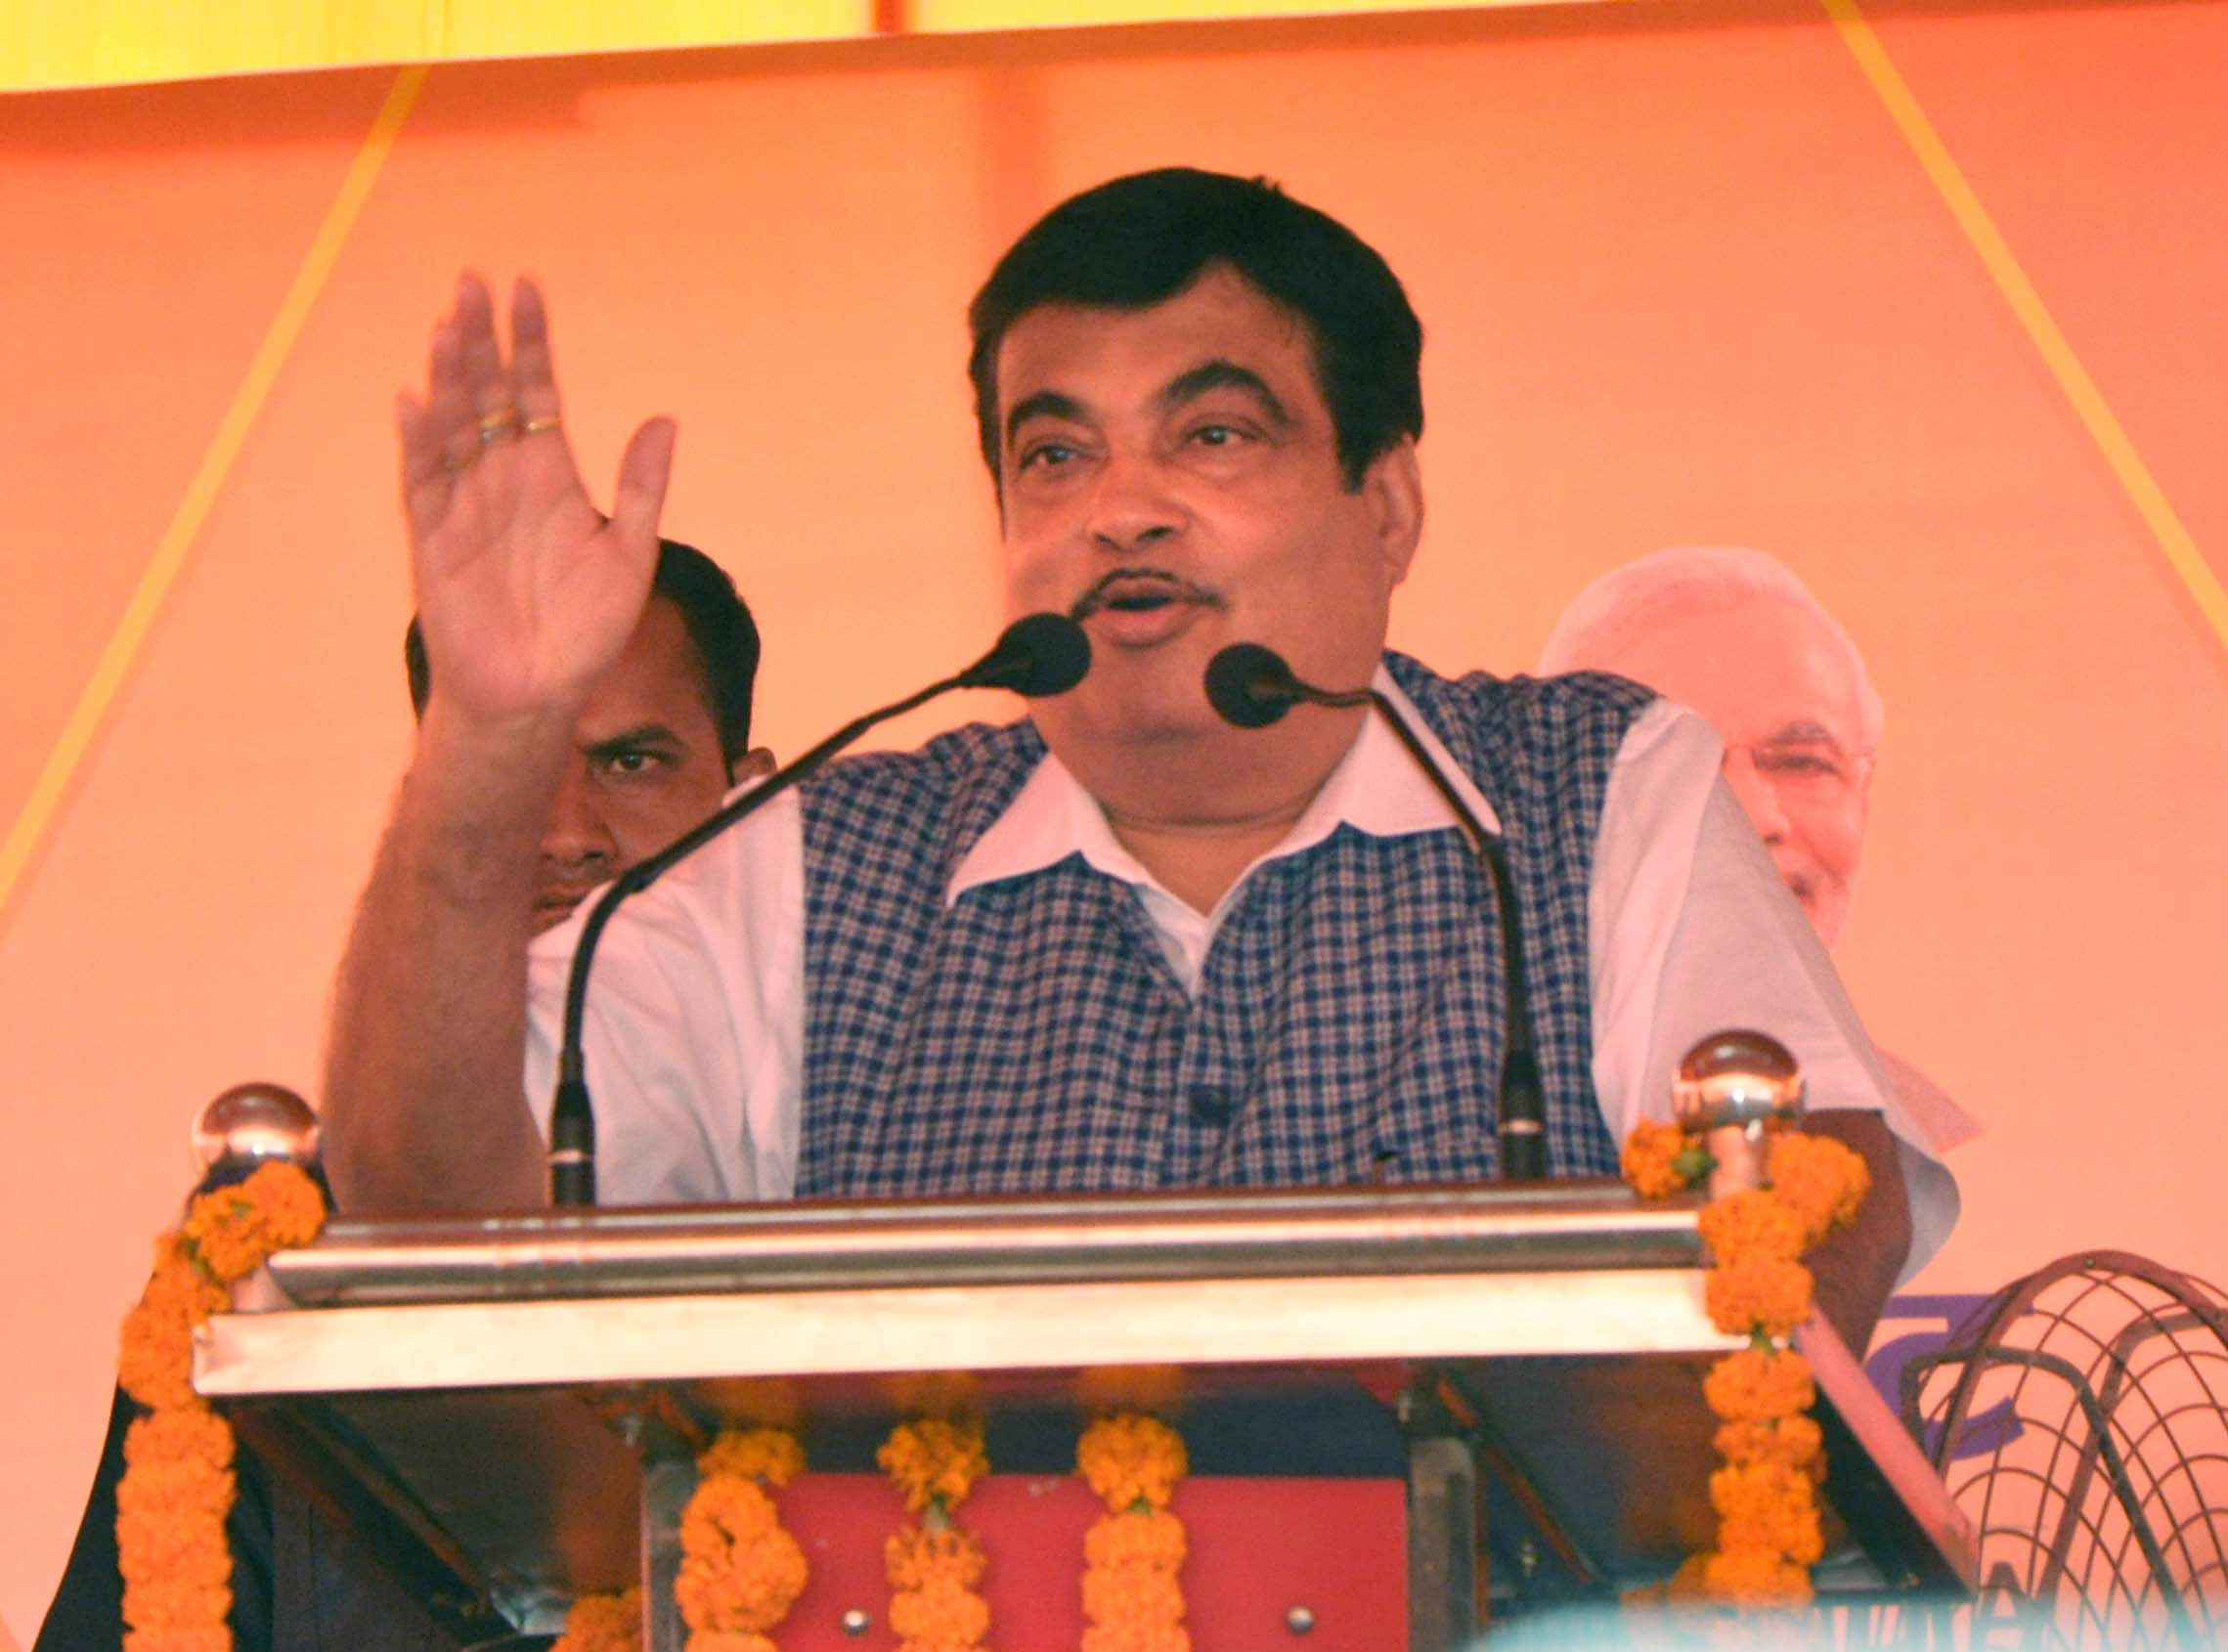 Union minister Nitin Gadkari said that Devendra Fadnavis will be the chief minister of Maharashtra